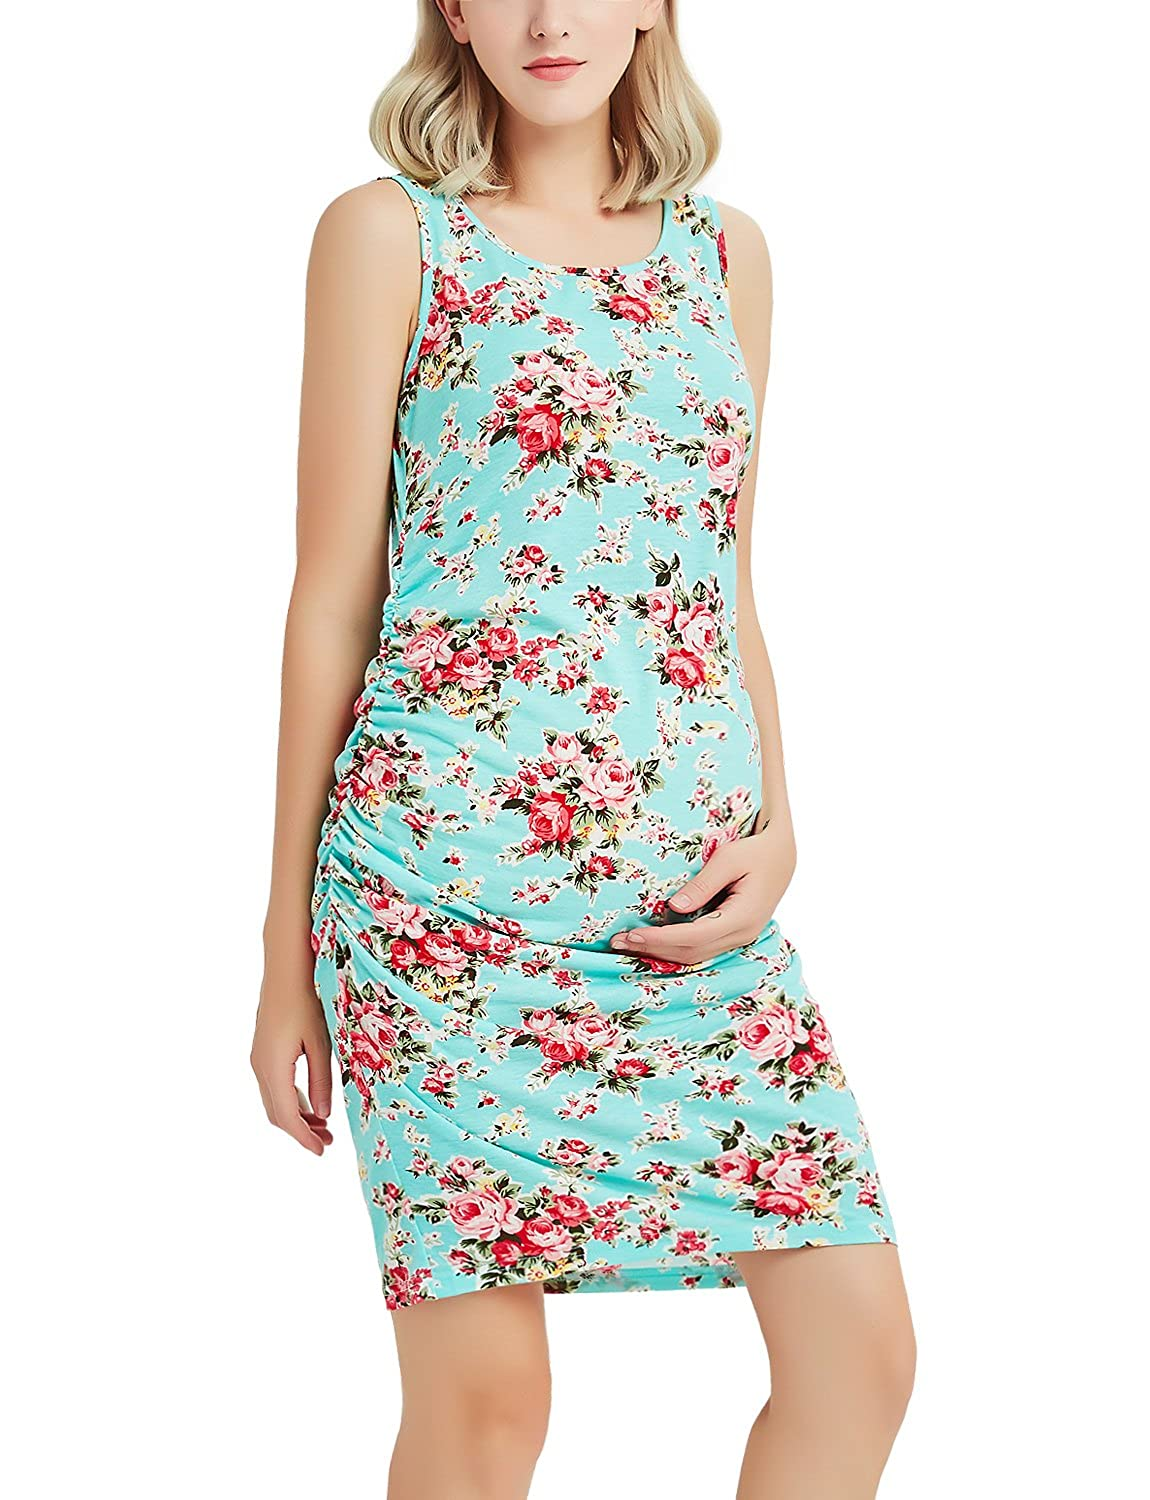 Bhome APPAREL レディース B07D26JZYS Large|Green With Red Flower Green With Red Flower Large